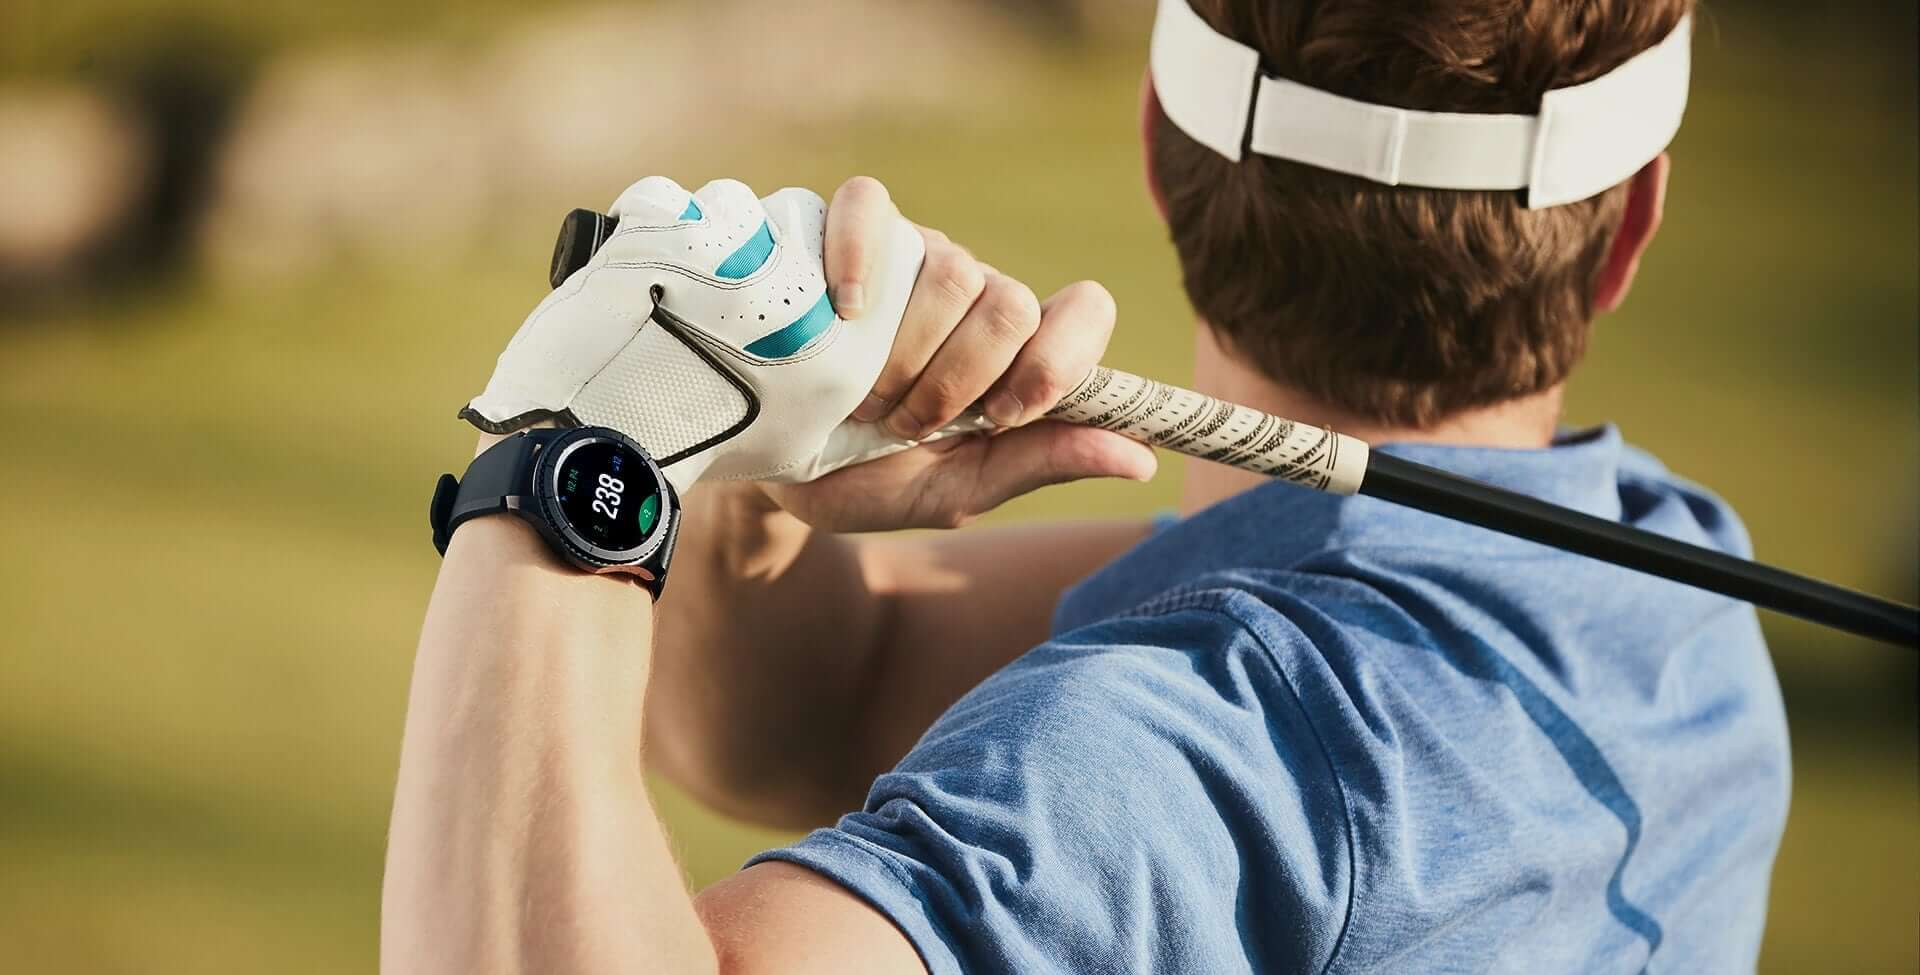 Samsung Gear S3 Smartwatch Golf Swing Club Sunny